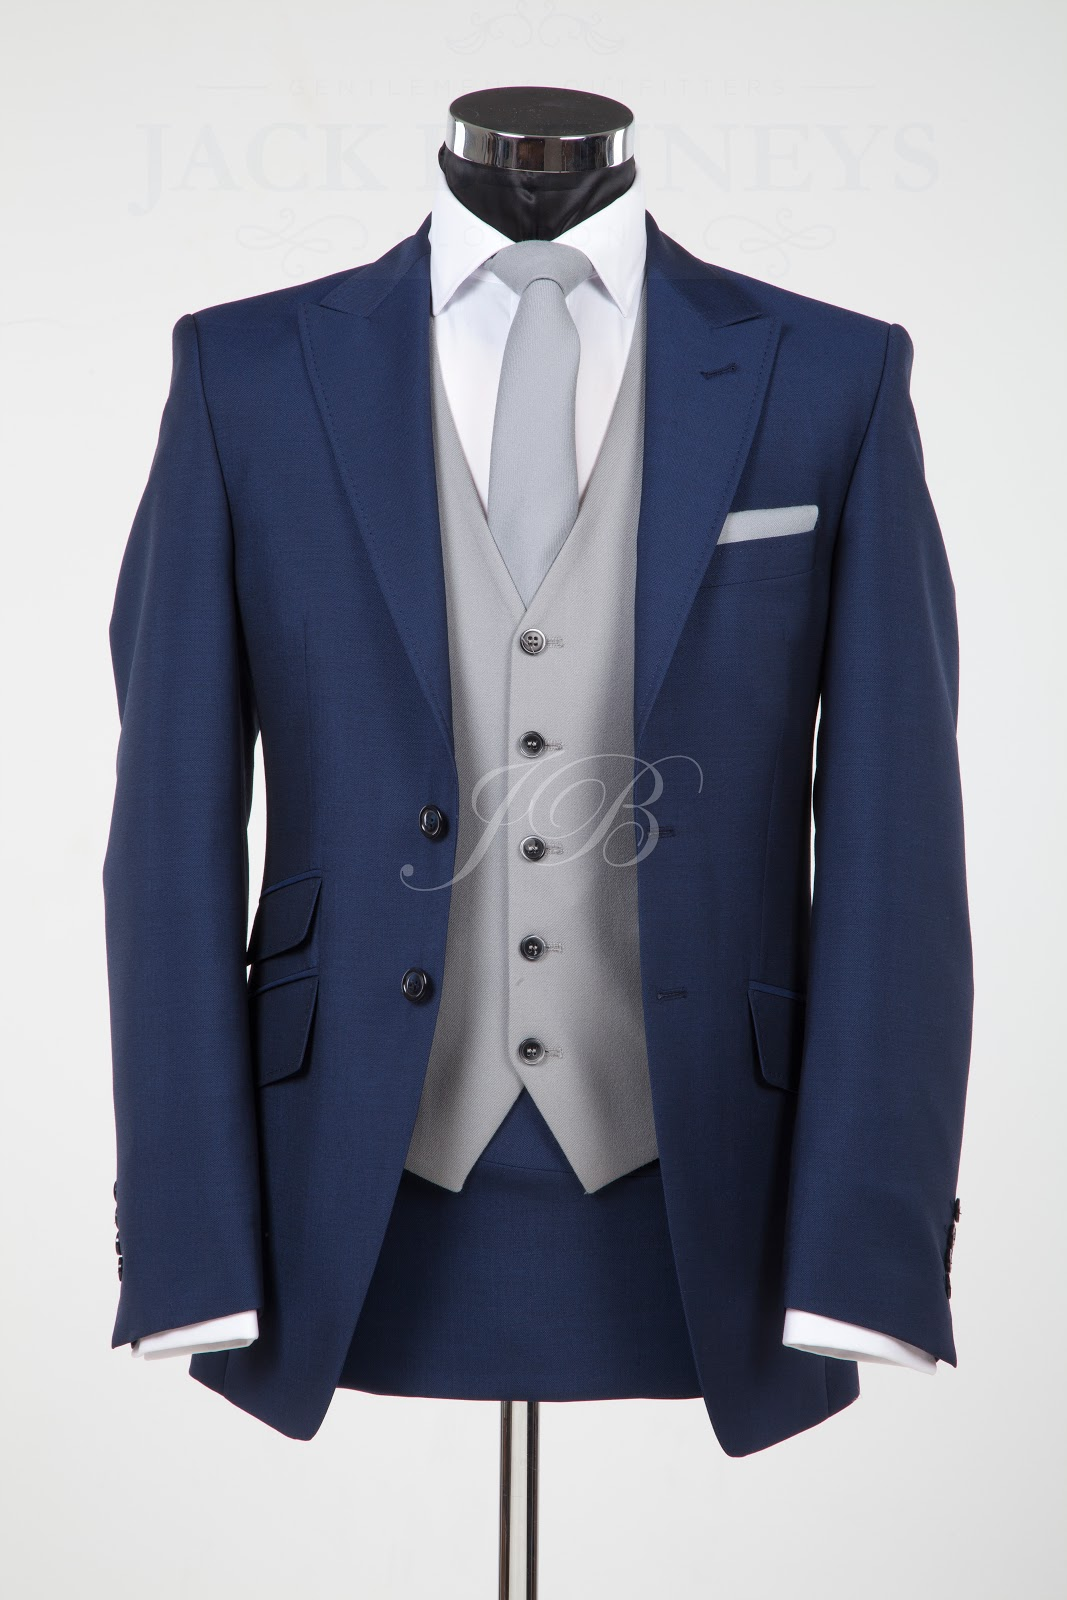 The Bunney Blog: Vintage Wedding Suit Hire *New for 2013 ...